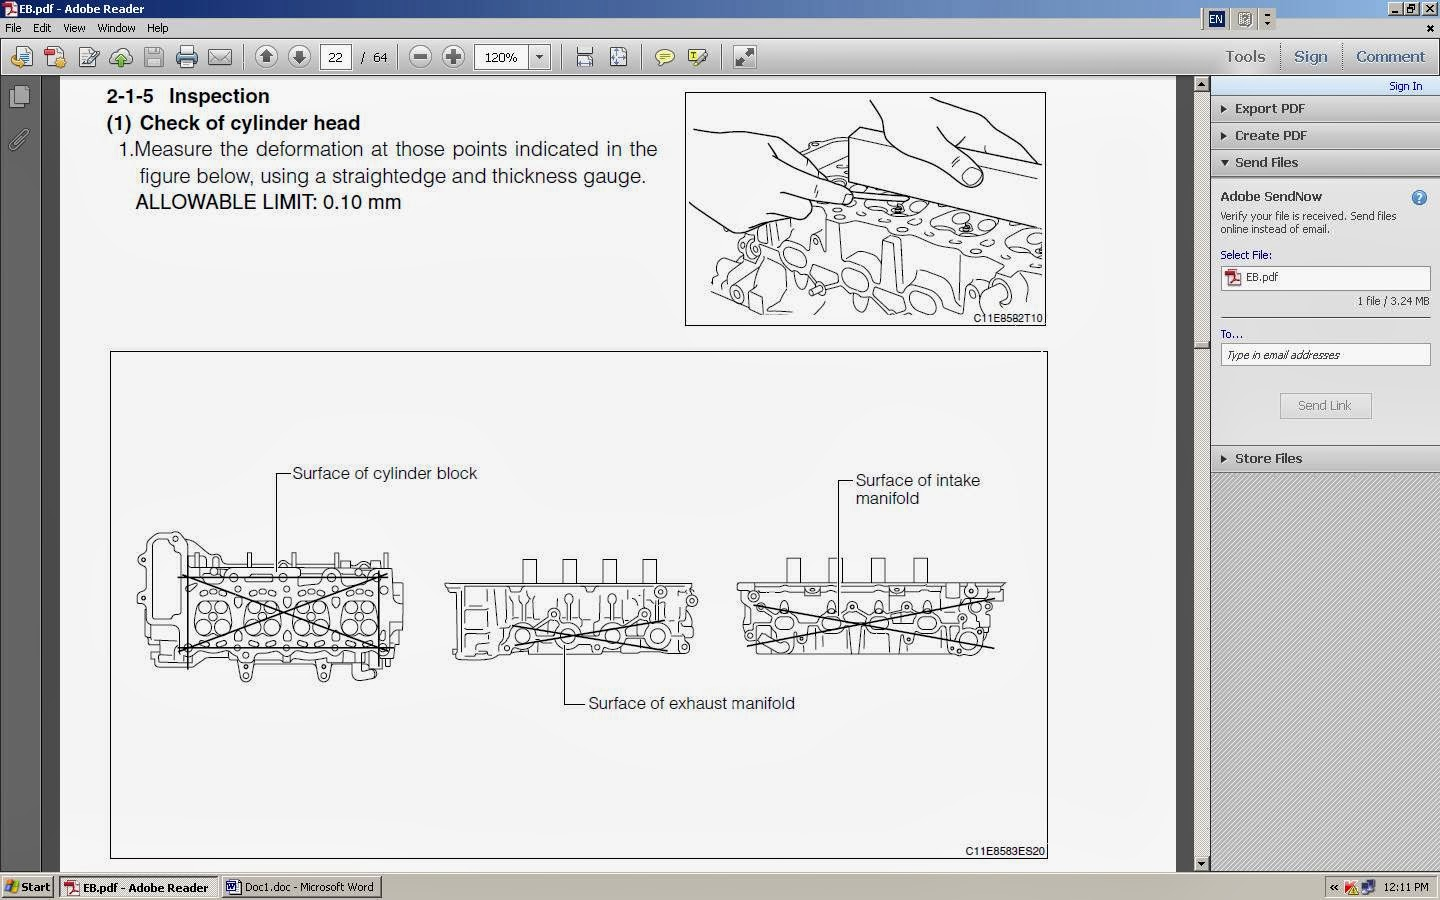 Wiring Diagram Daihatsu Jb Smart Diagrams J B Kp Gasket Jl And Det Engine Cylinder Head Simple Automotive